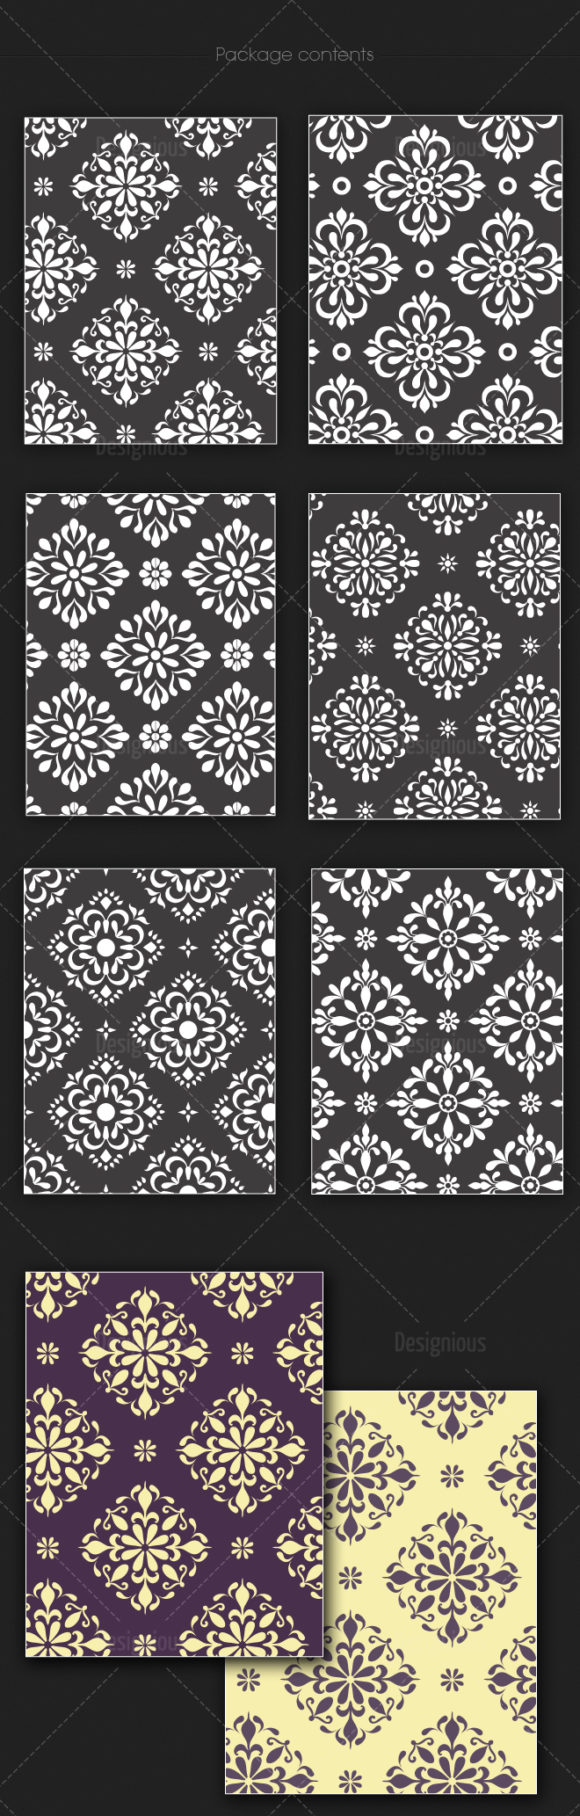 Seamless Patterns Vector Pack 138 products seamless patterns vector pack 138 large